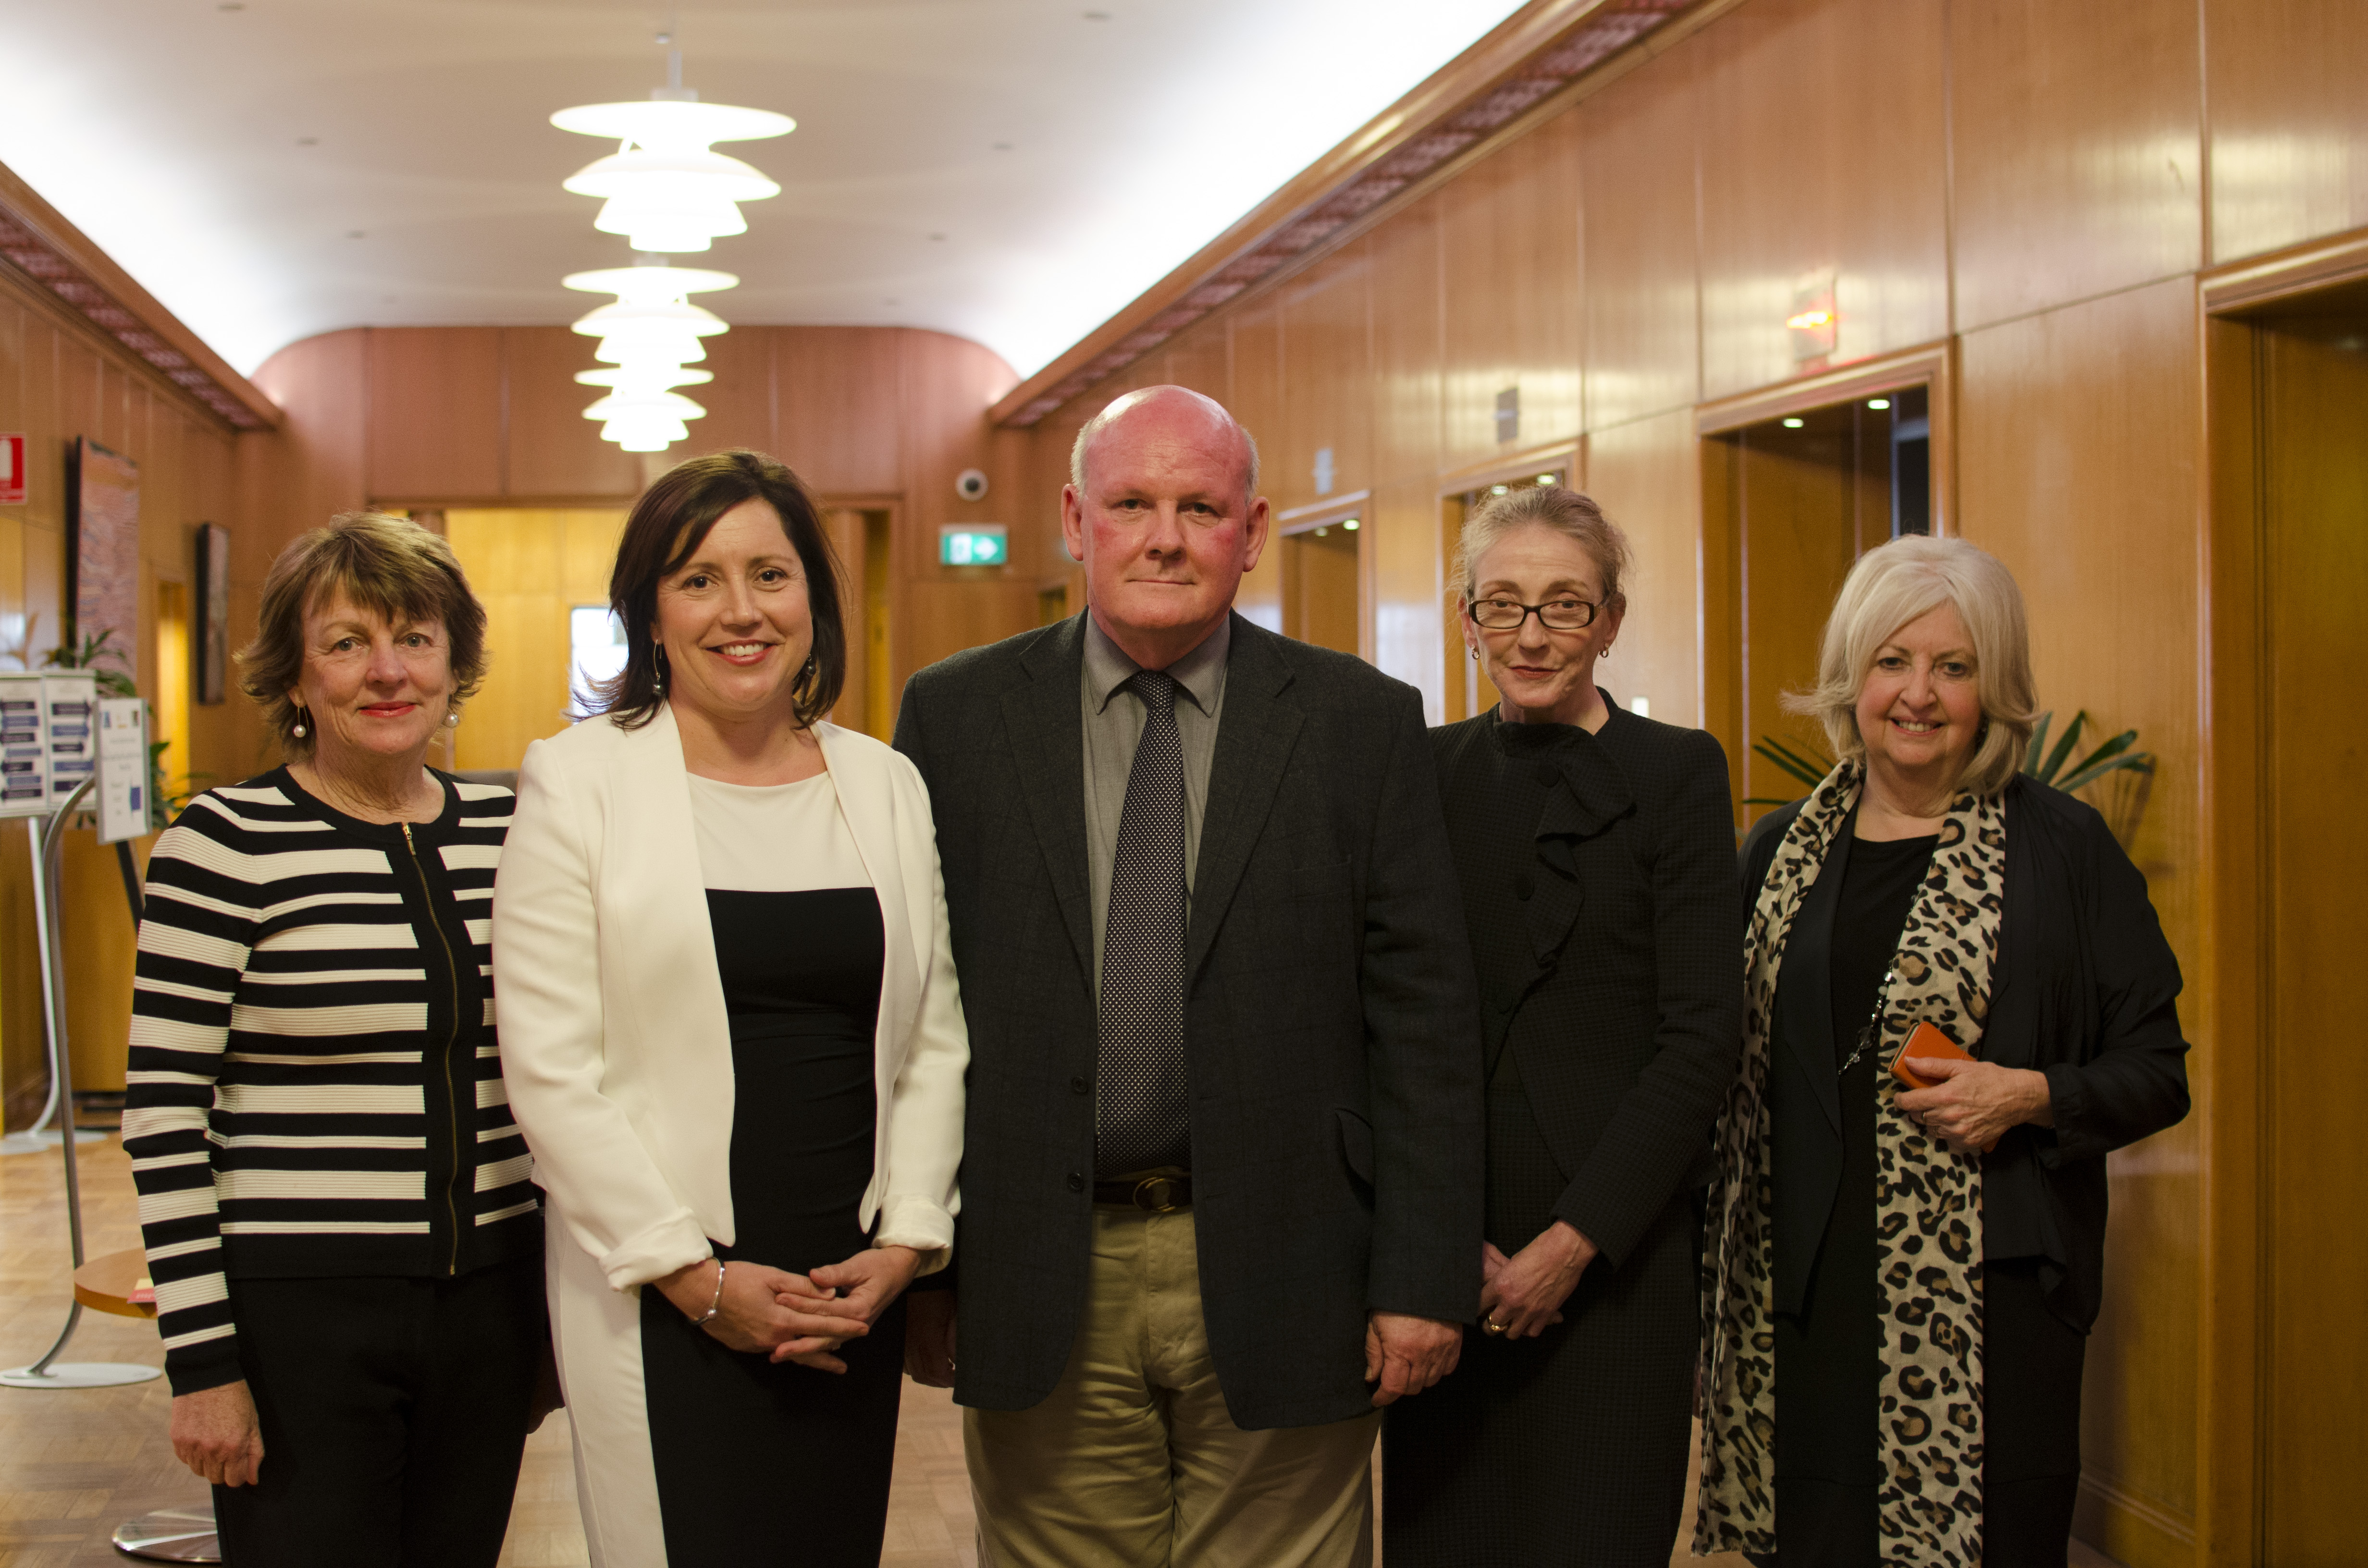 Shirley Alexander, Kerryn Baird, Philip Norrie, Mrs Norrie, Rosemary Johnston